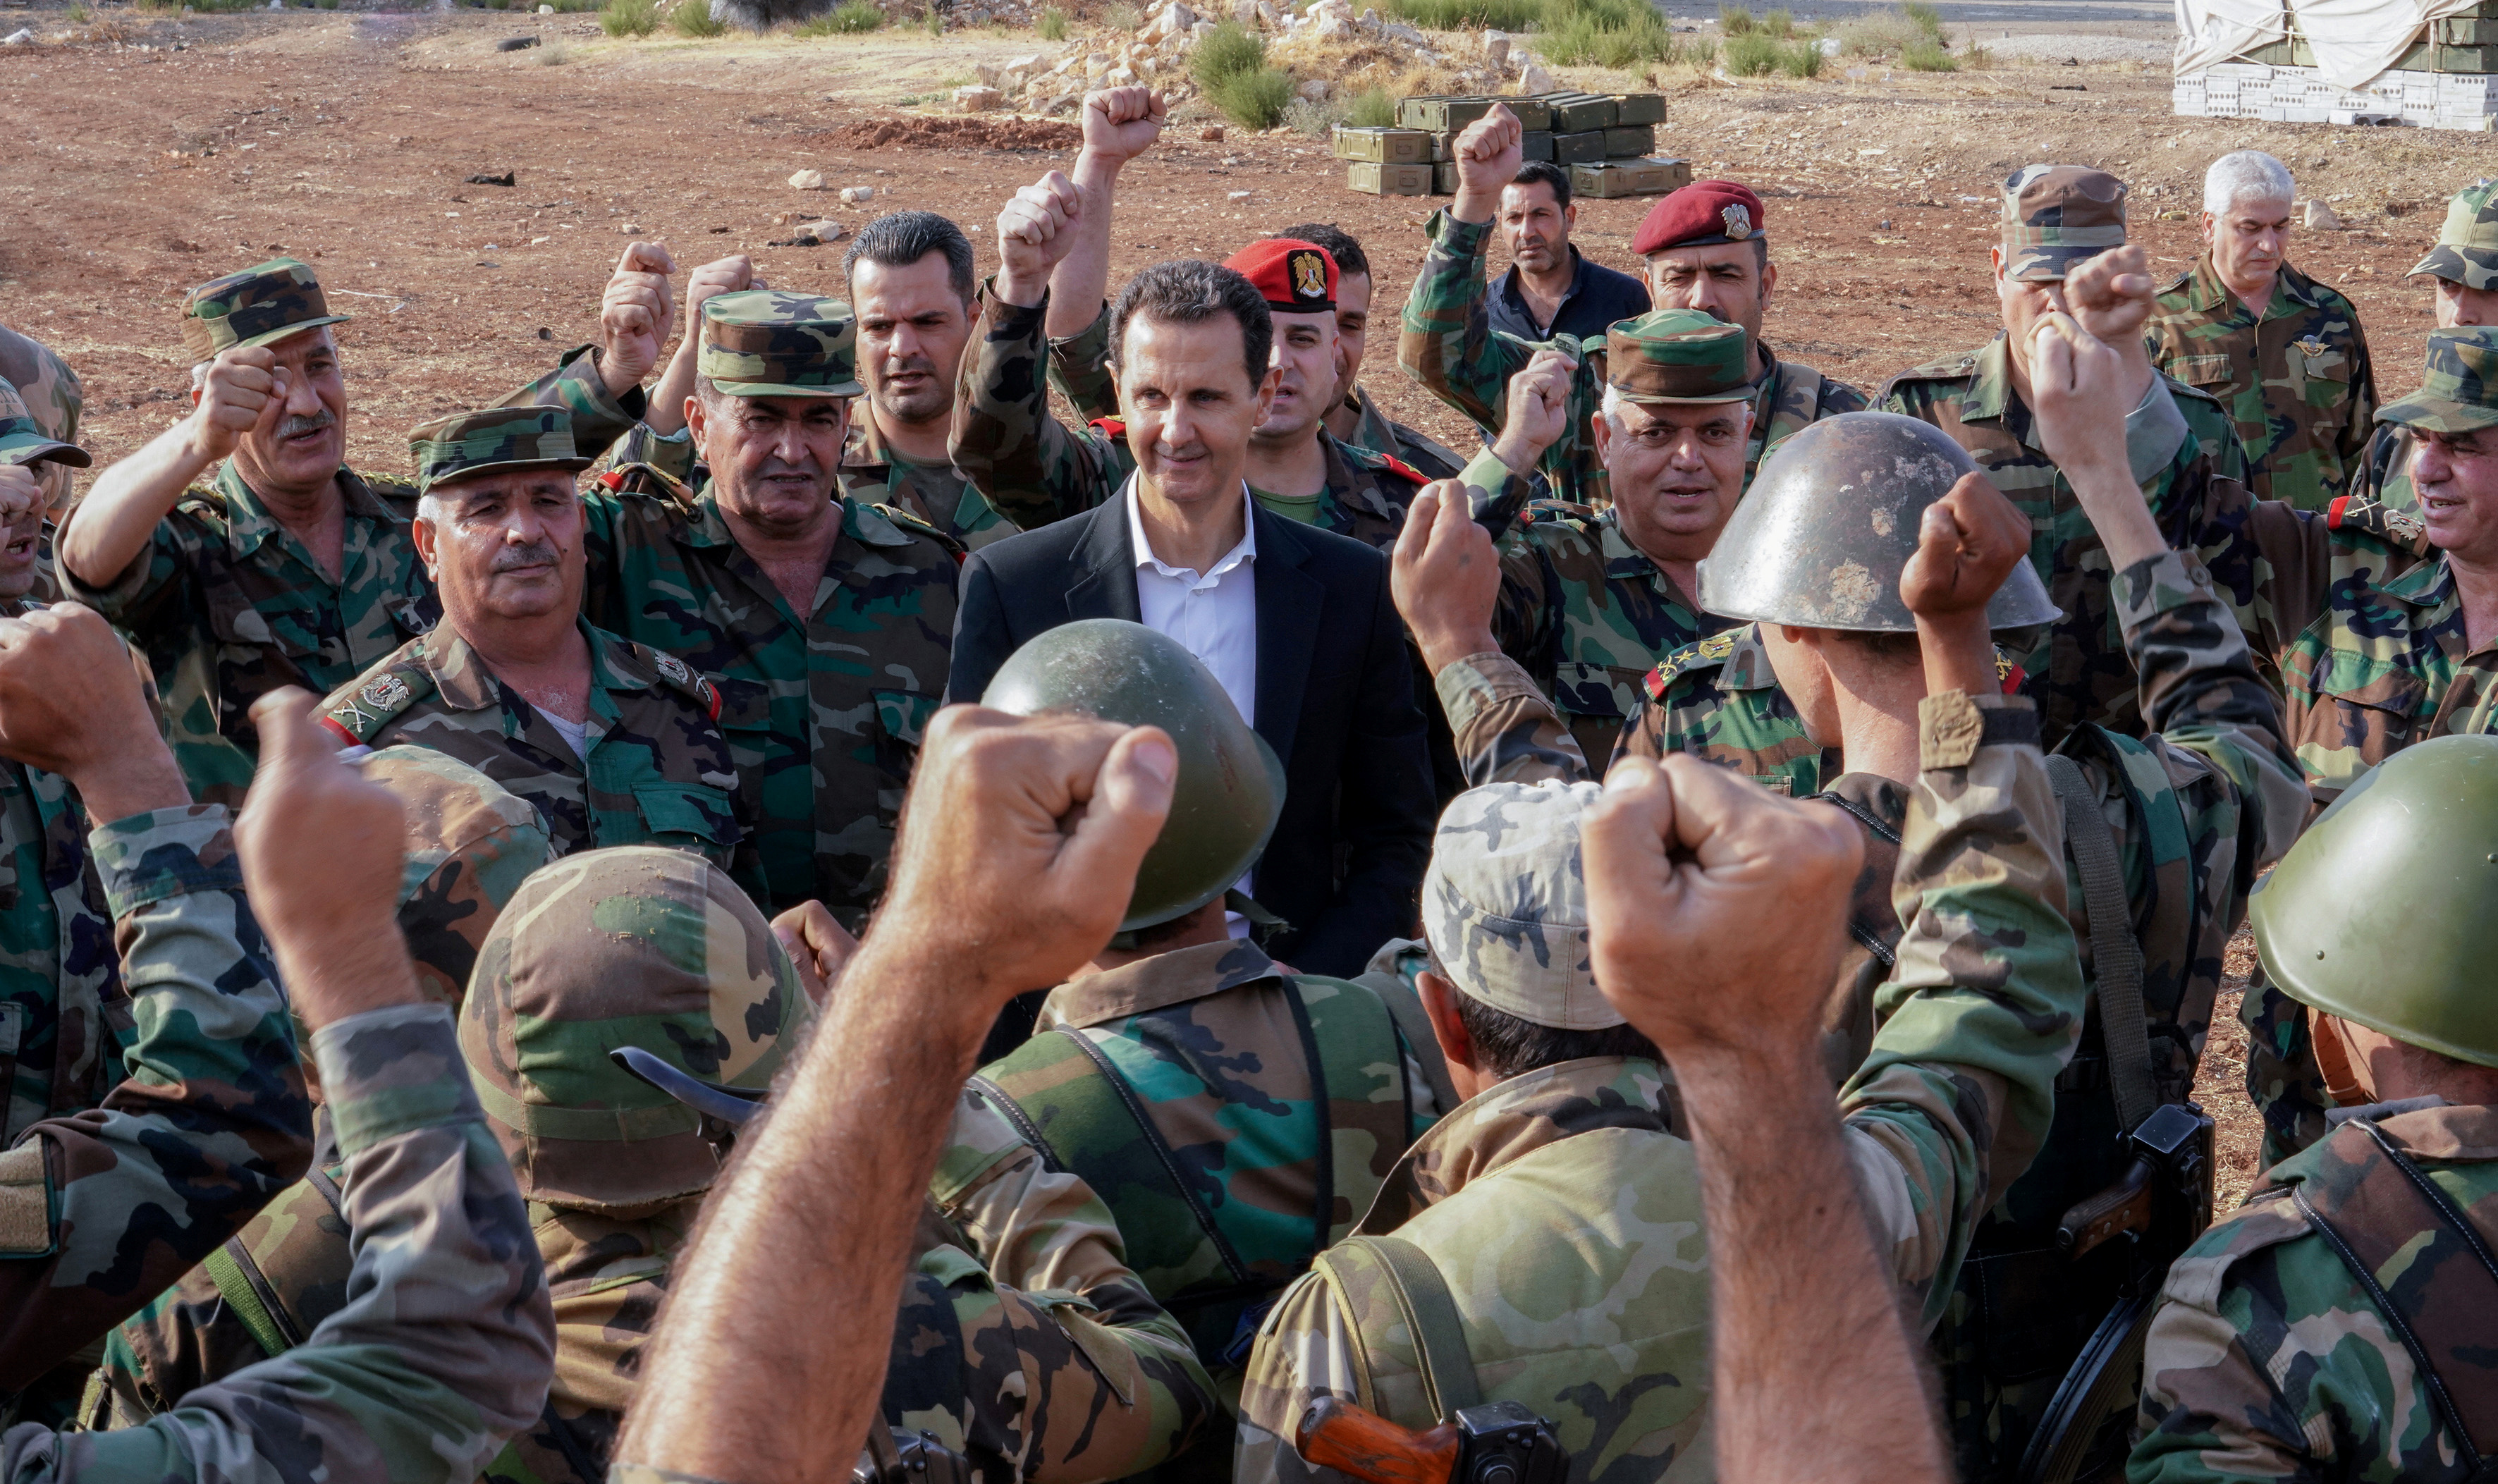 President of the Syrian regime Bashar al-Assad with his army members in Idlib countryside - October 2019 (SANA)